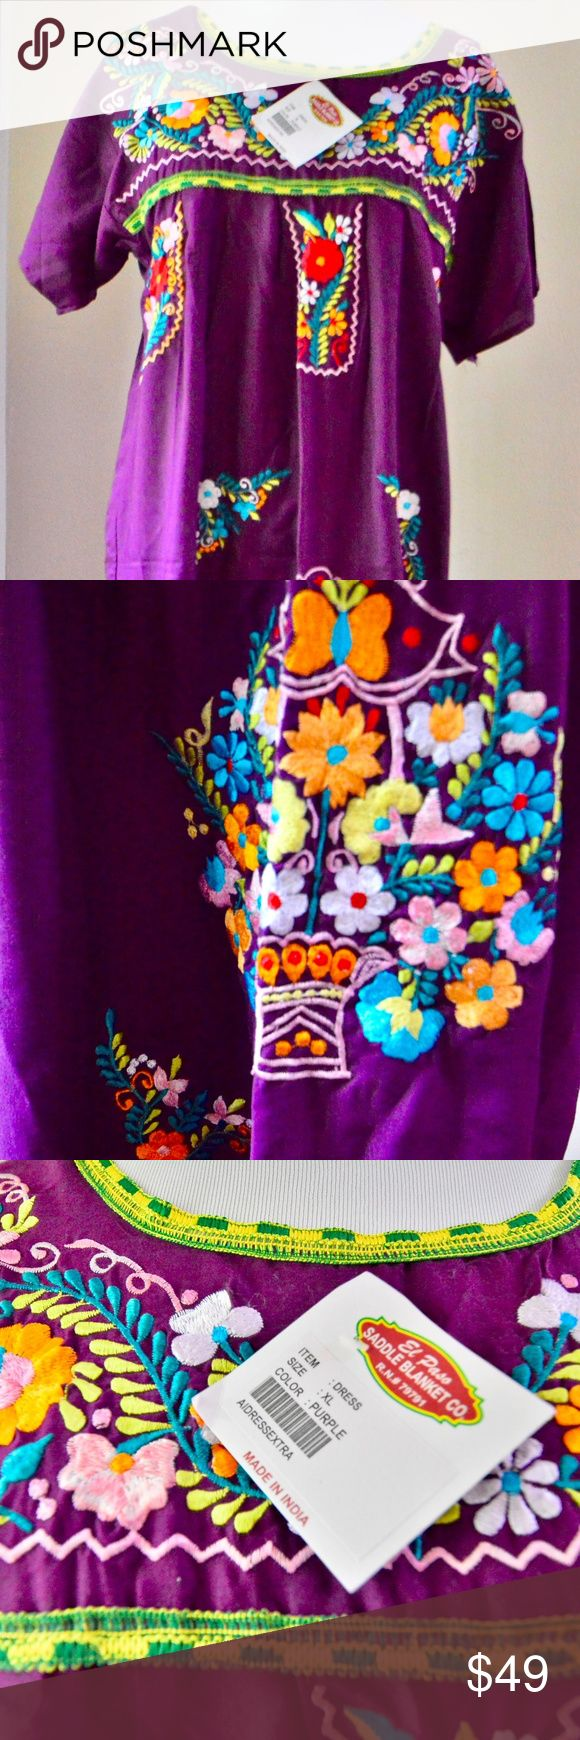 "Embroidered Purple Mexican Wedding Dress Embroidered Purple Short Sleeve  Mexican Wedding Dress.  Size: Extra Large . Measurements Length (shoulder to bottom edge):  44"" Width (from under one arm to the other): 18"".  Please check the measurements - it's not a very ""large"" ""Extra Large"".  Fabric: Cotton. On the Tag: El Paso Saddle Bag Company. It's made in India but it's a Mexican Wedding Dress (Hello Diversity) Old El Paso Dresses Maxi"